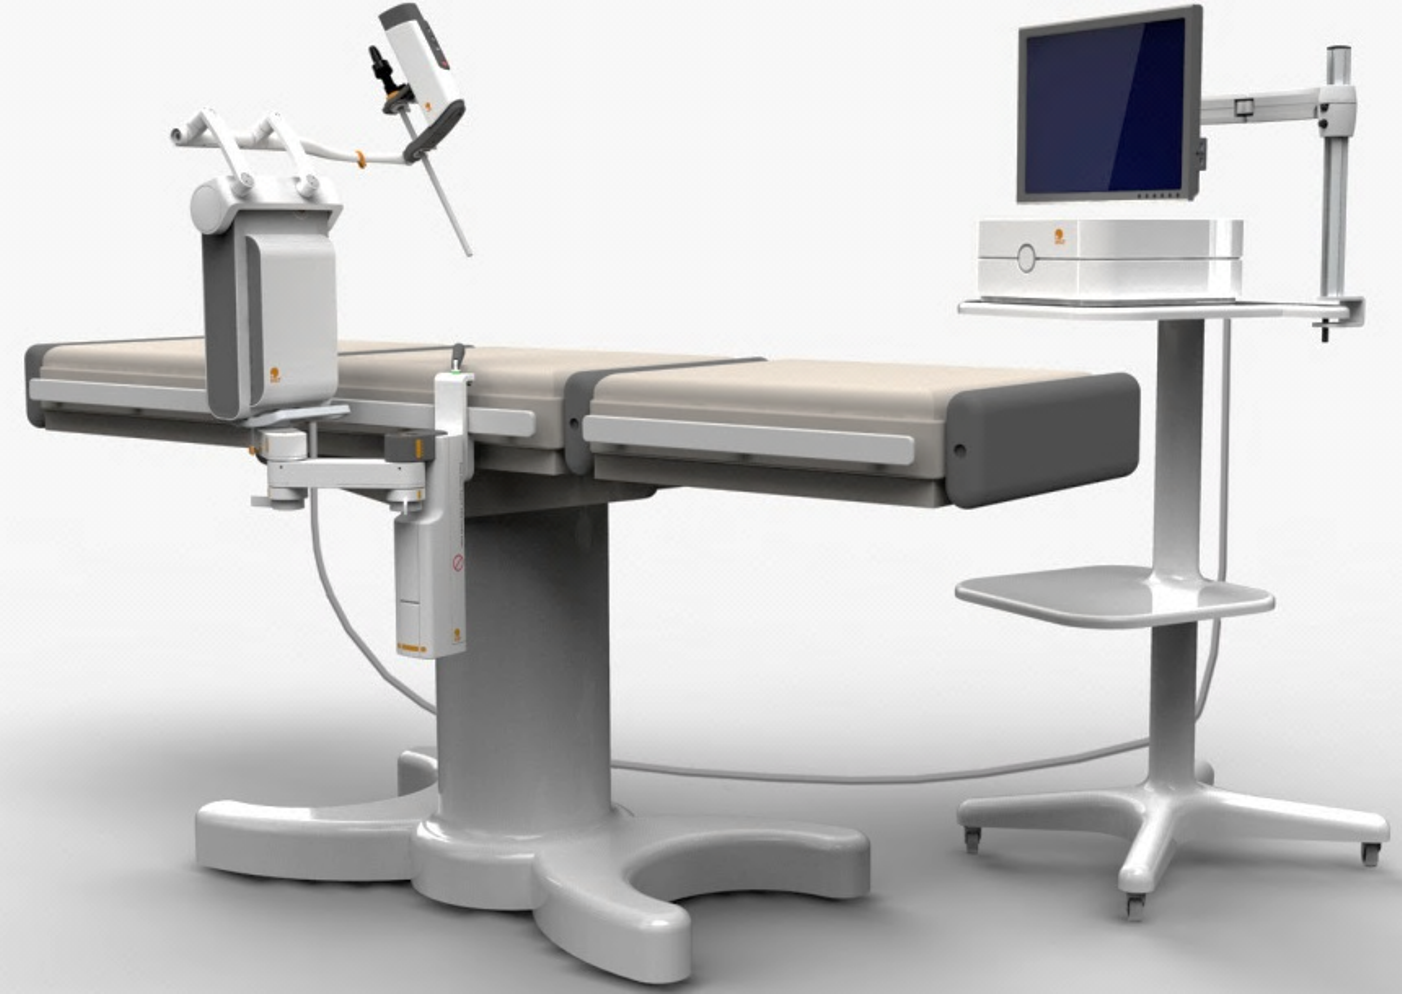 MST's AutoLap image-guided laparoscopic positioning system. Photo: courtesy